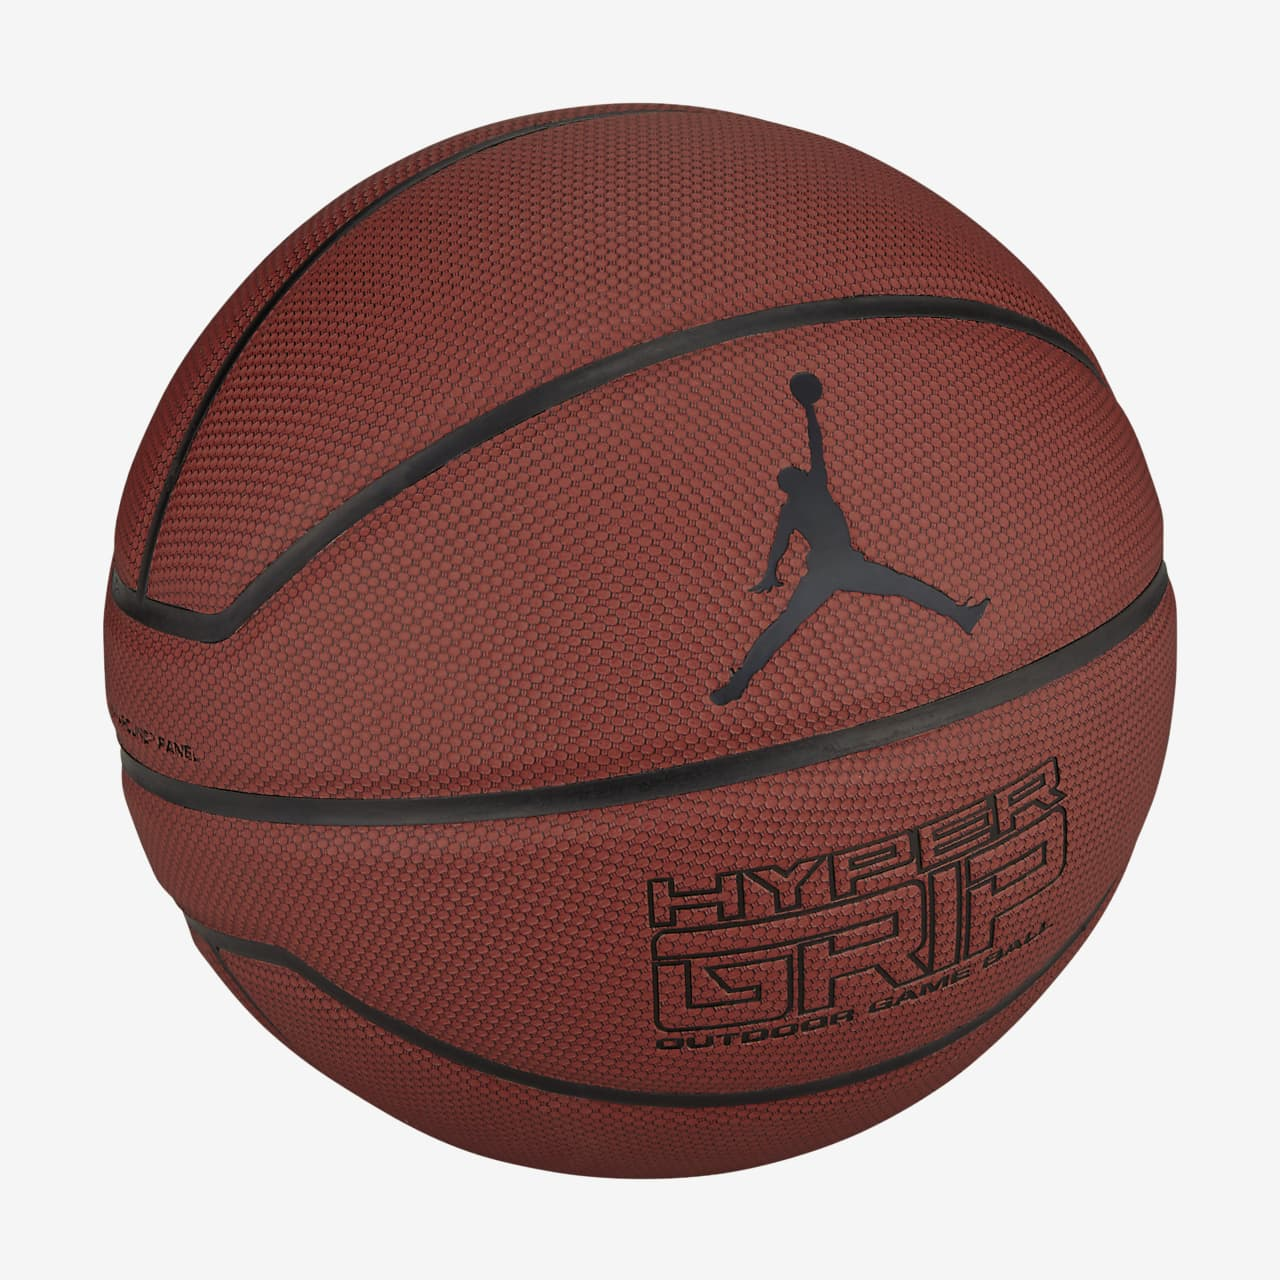 Basketball Ball Jordan Hypergrip 4p Basketball